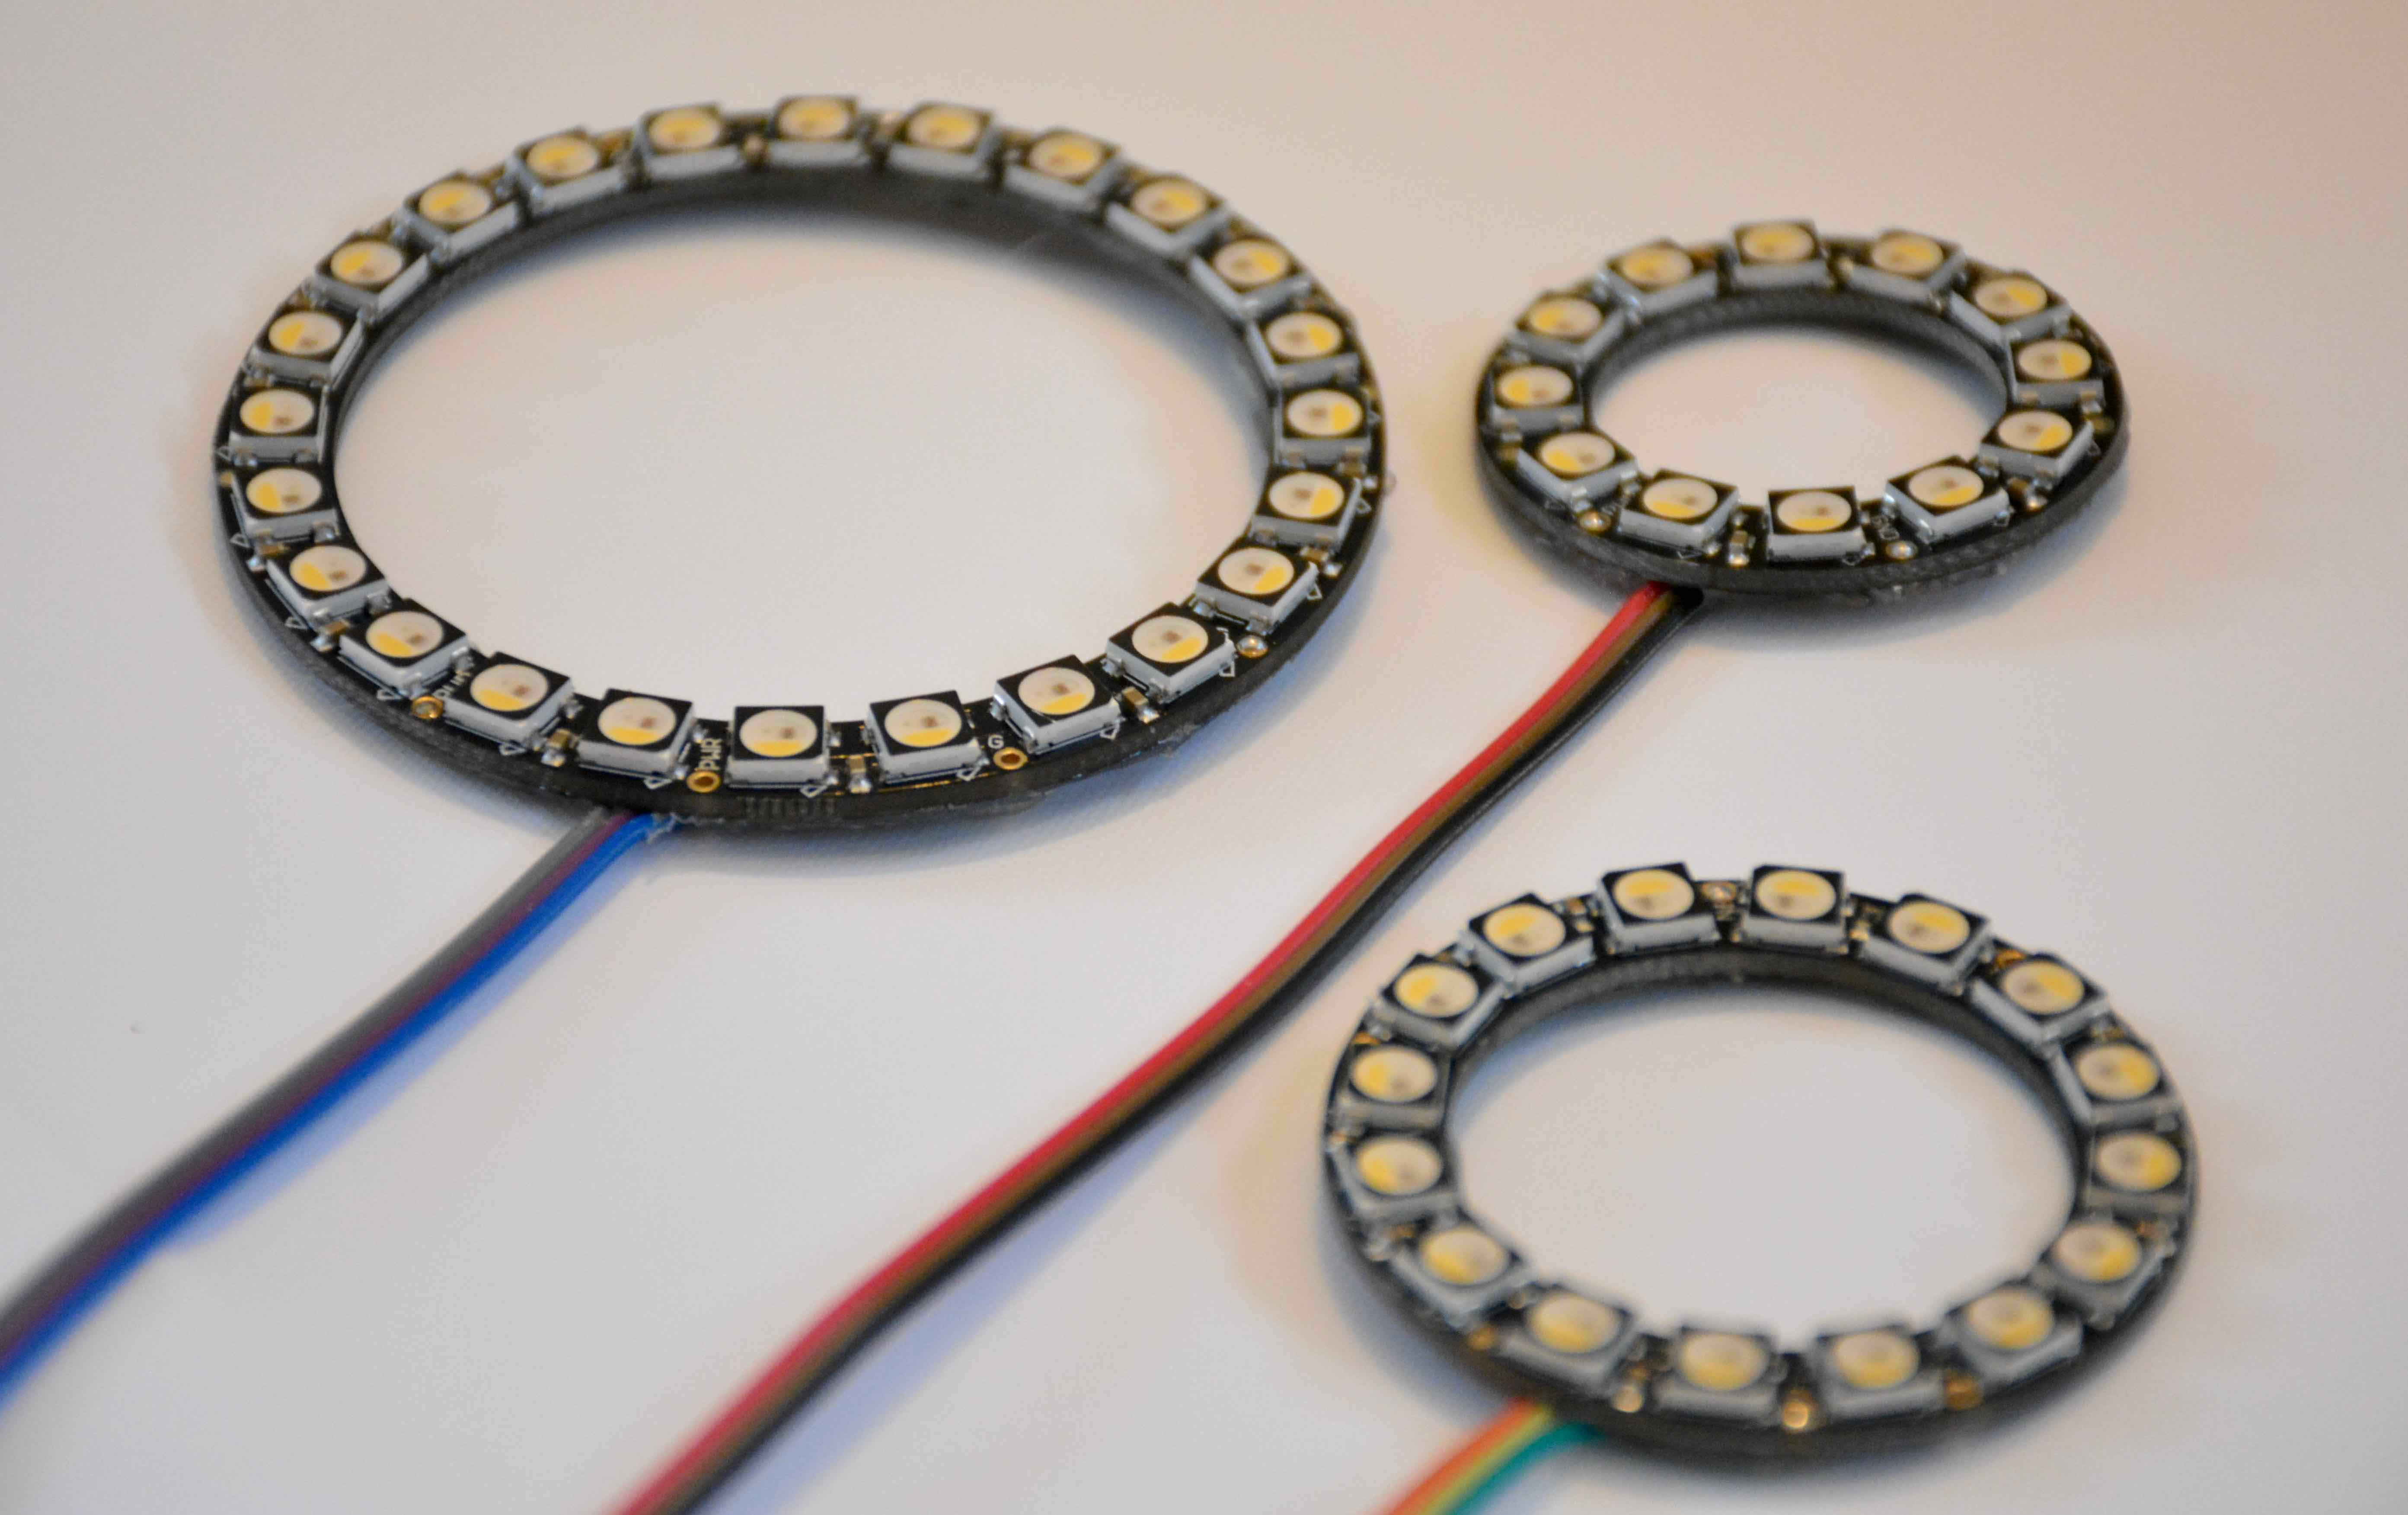 Esp8266 Robert Oostenvelds Blog Light Bar Furthermore Dmx Rgb Led Strip On Wiring As Explained In A Previous Post For The Eegsynth We Want To Use Neopixel Array That Can Be Controlled Wirelessly Using Dmx512 Protocol